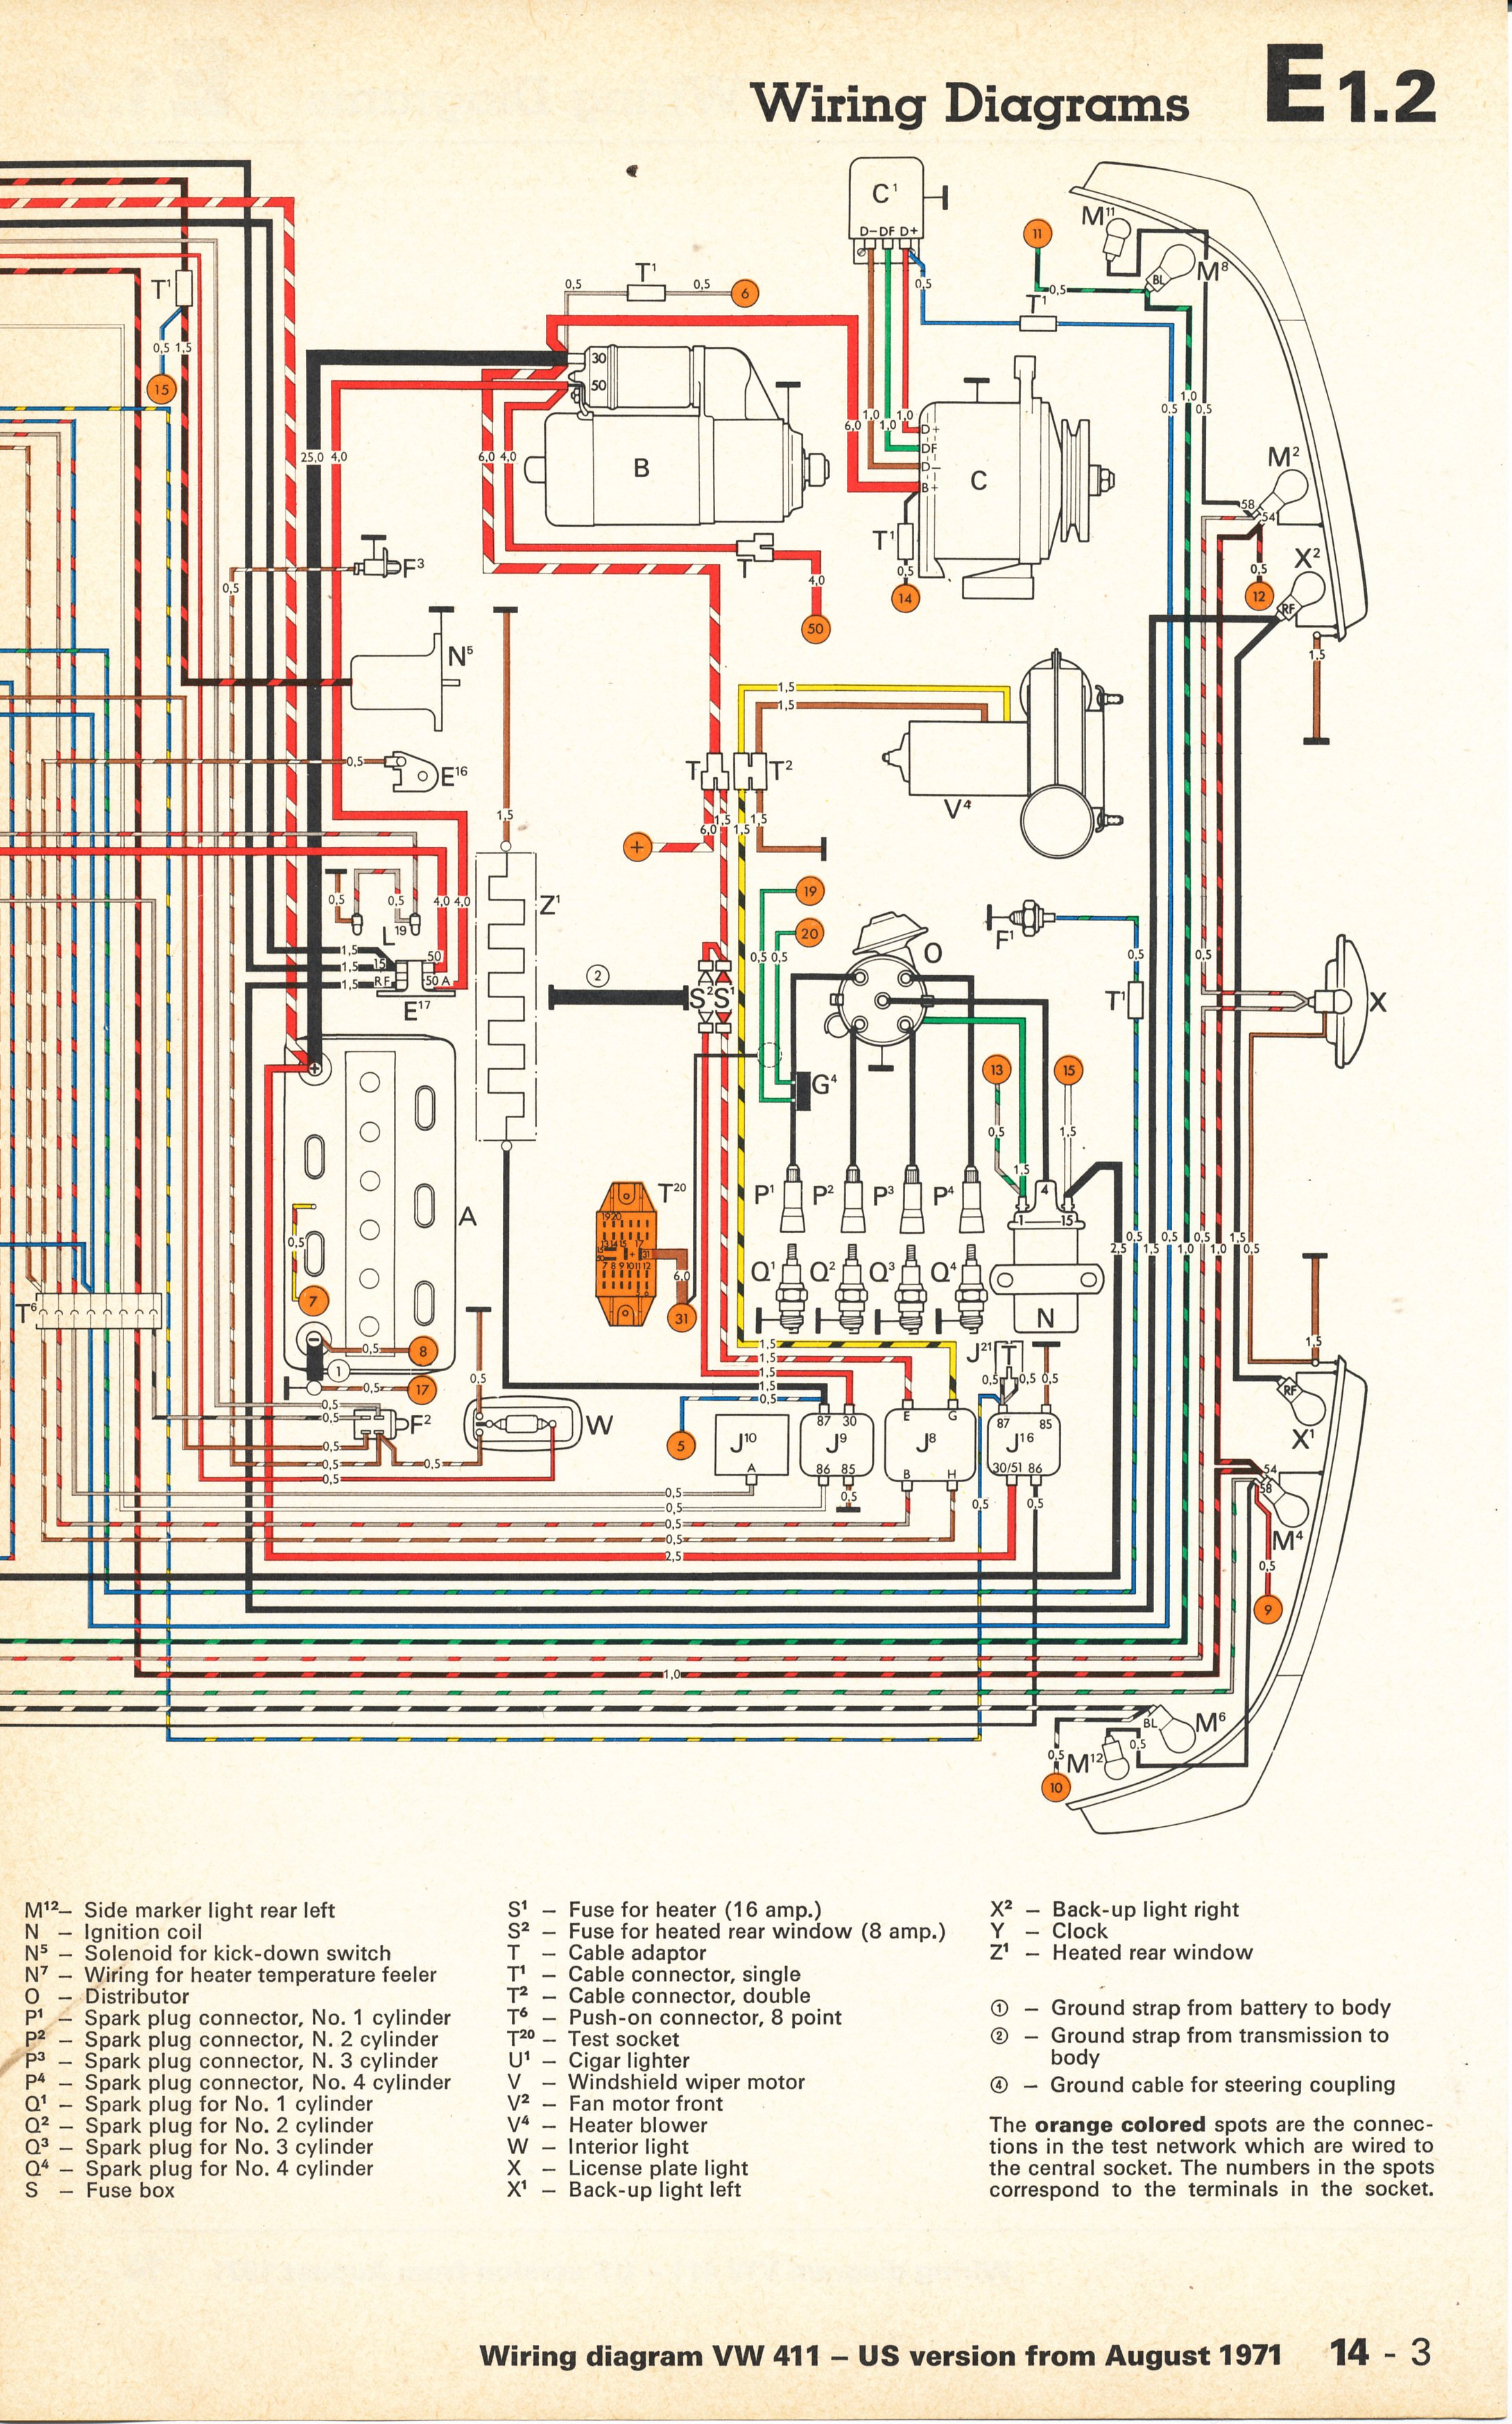 73 vw thing wiring diagram thesamba.com :: type 4 wiring diagrams #5